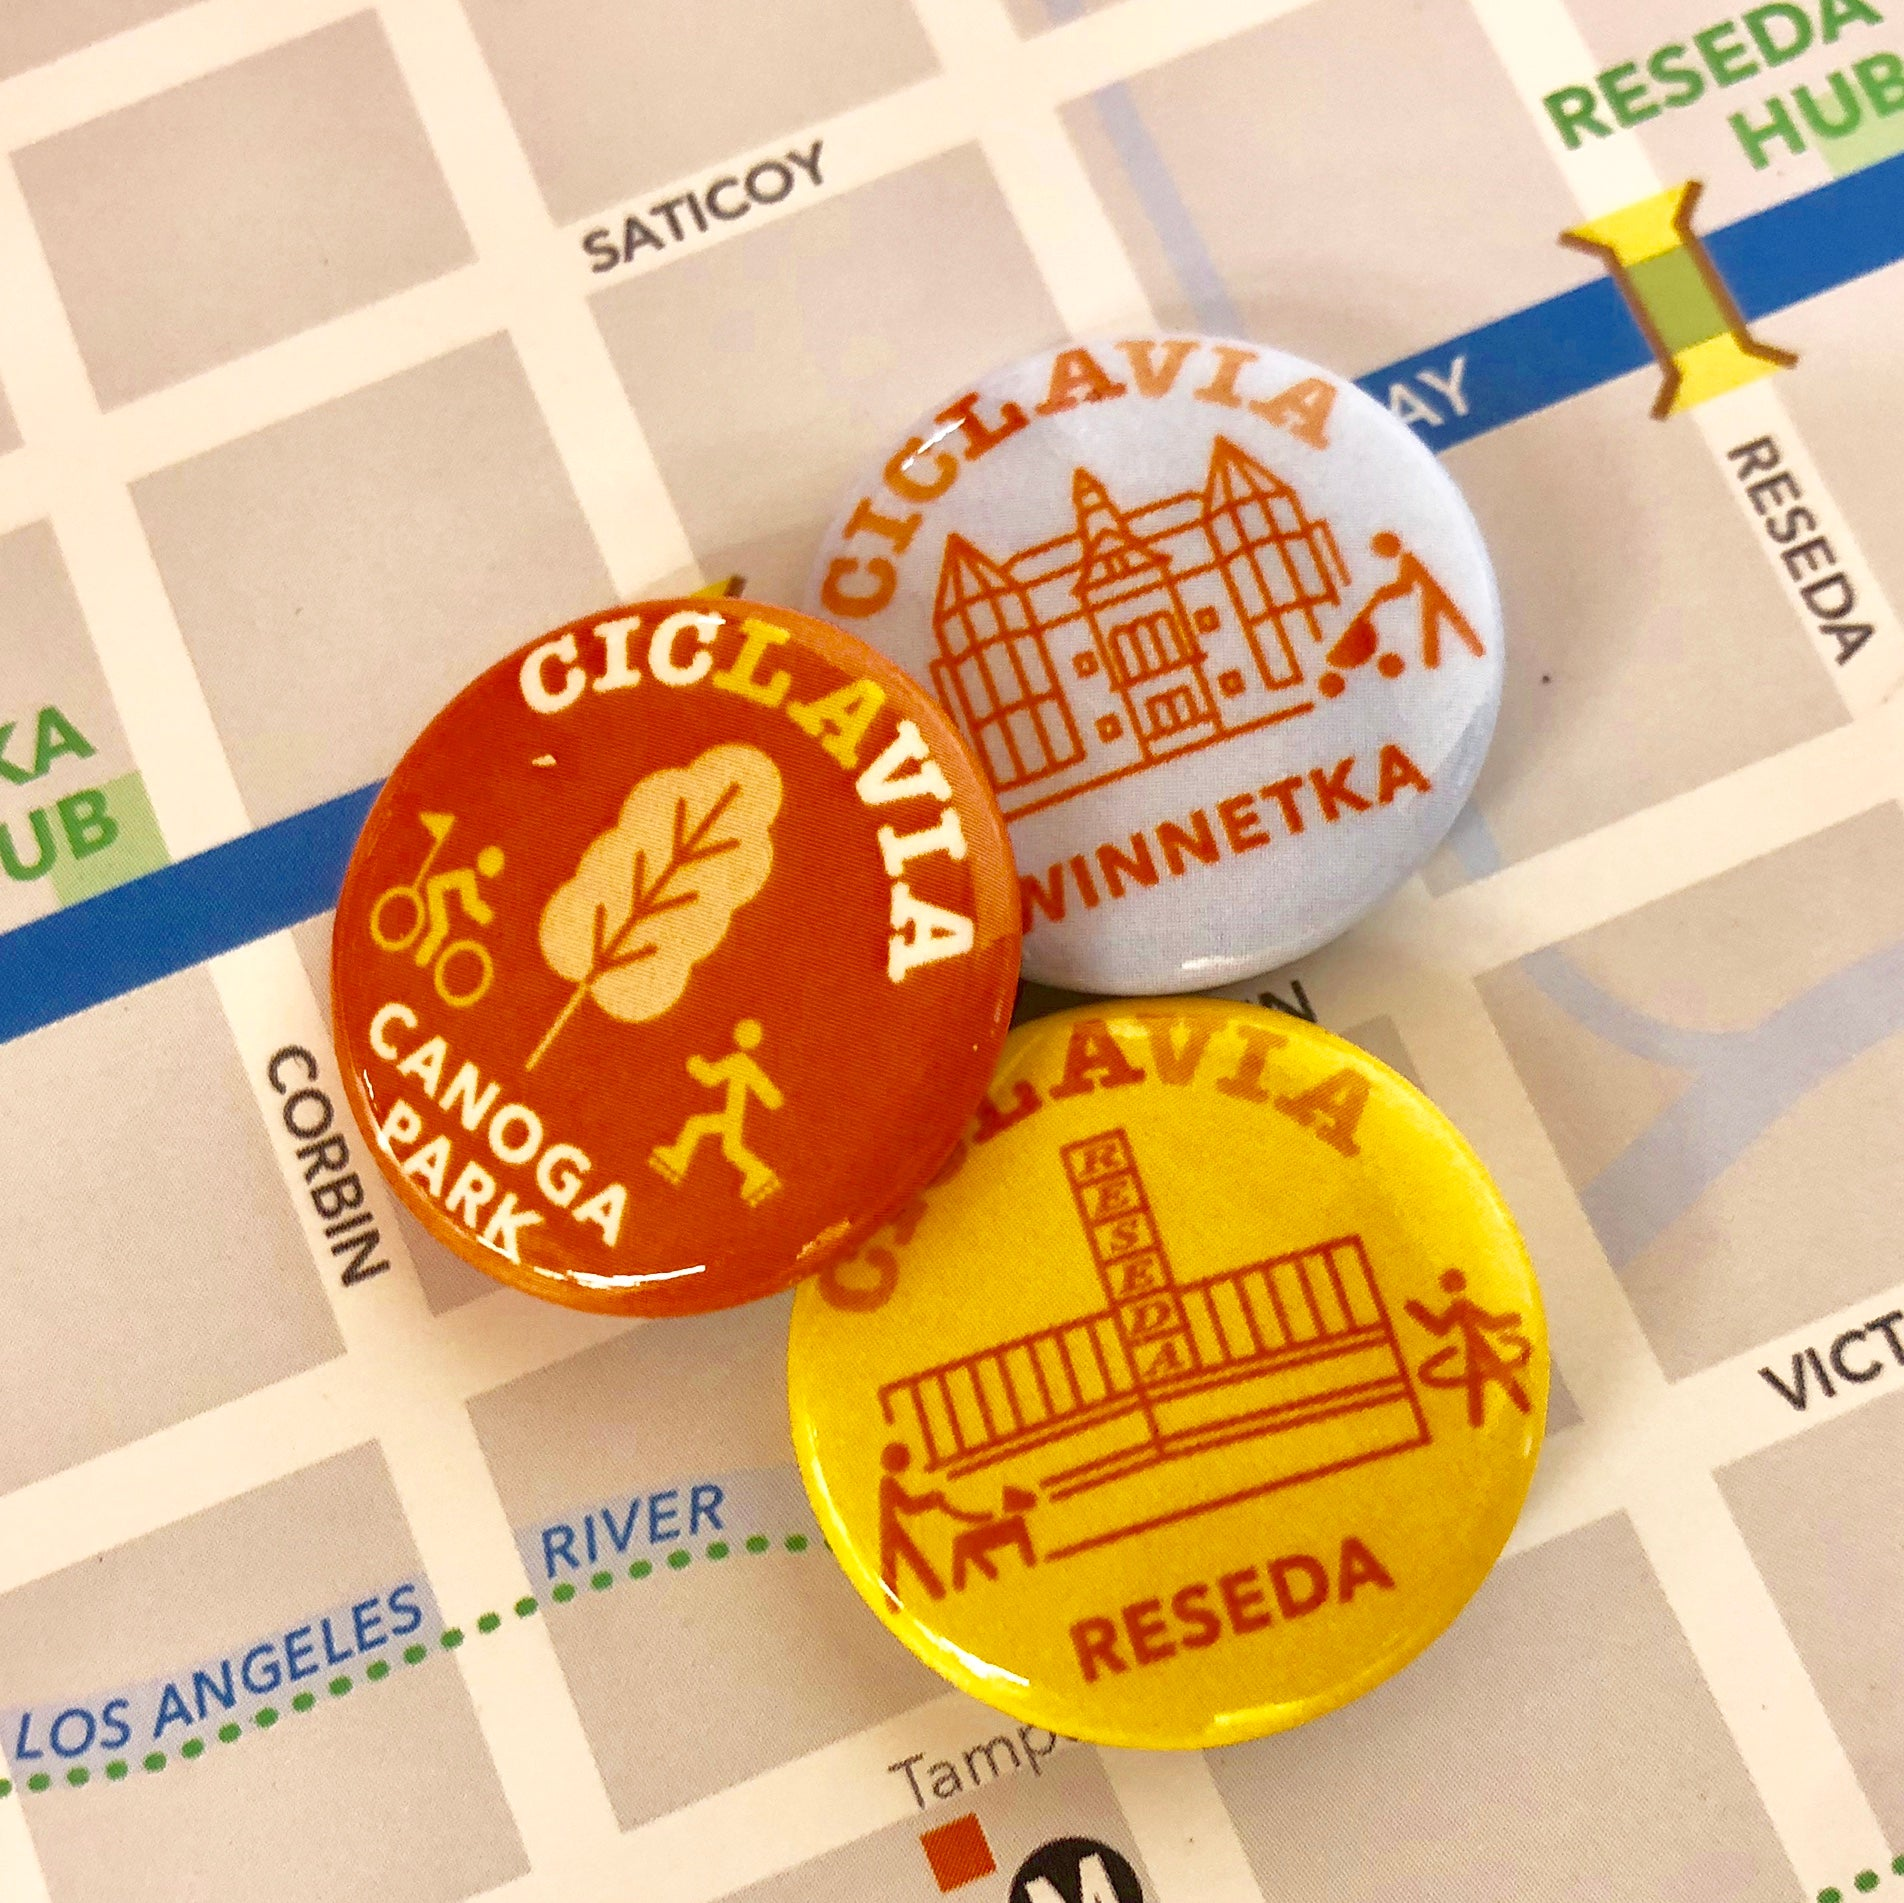 The Valley Button Pack: Canoga Park, Winnetka & Reseda